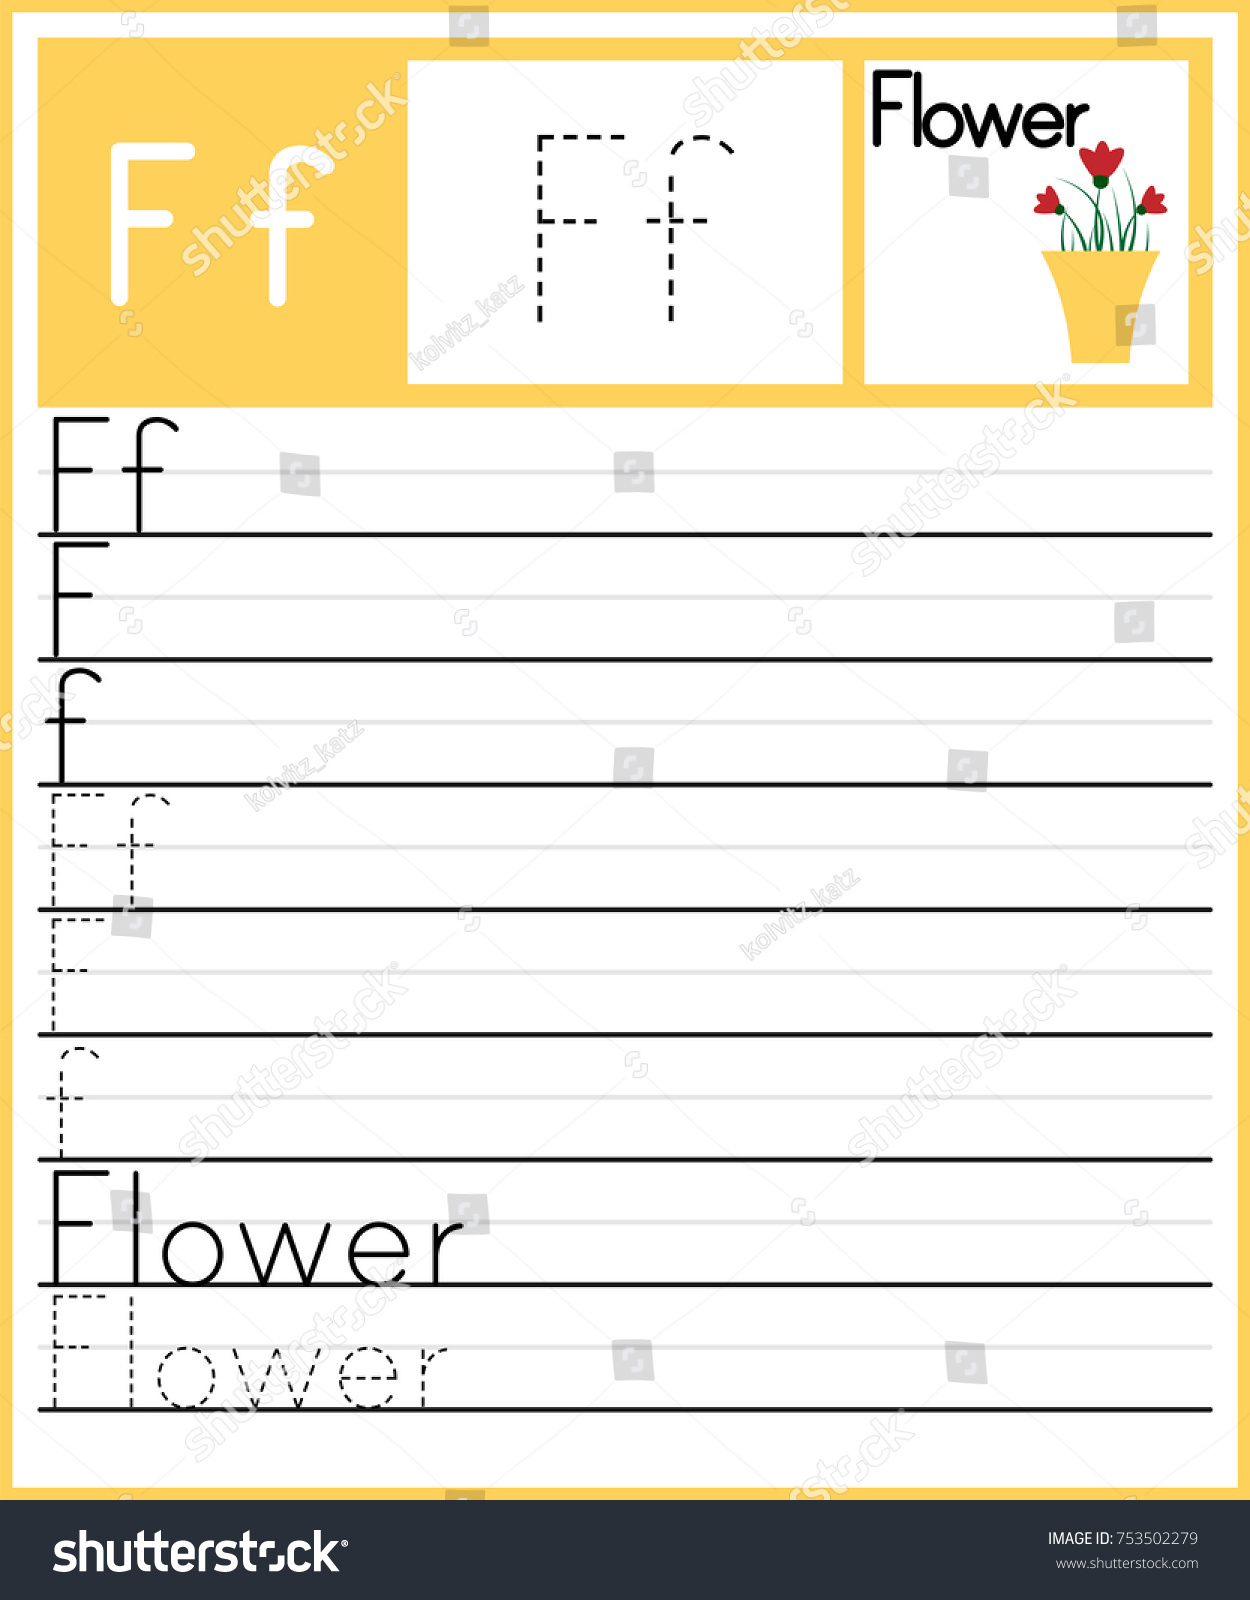 Kindergarten In Spanish Letter F Worksheet Kindergarten Best Free Printable Worksheets